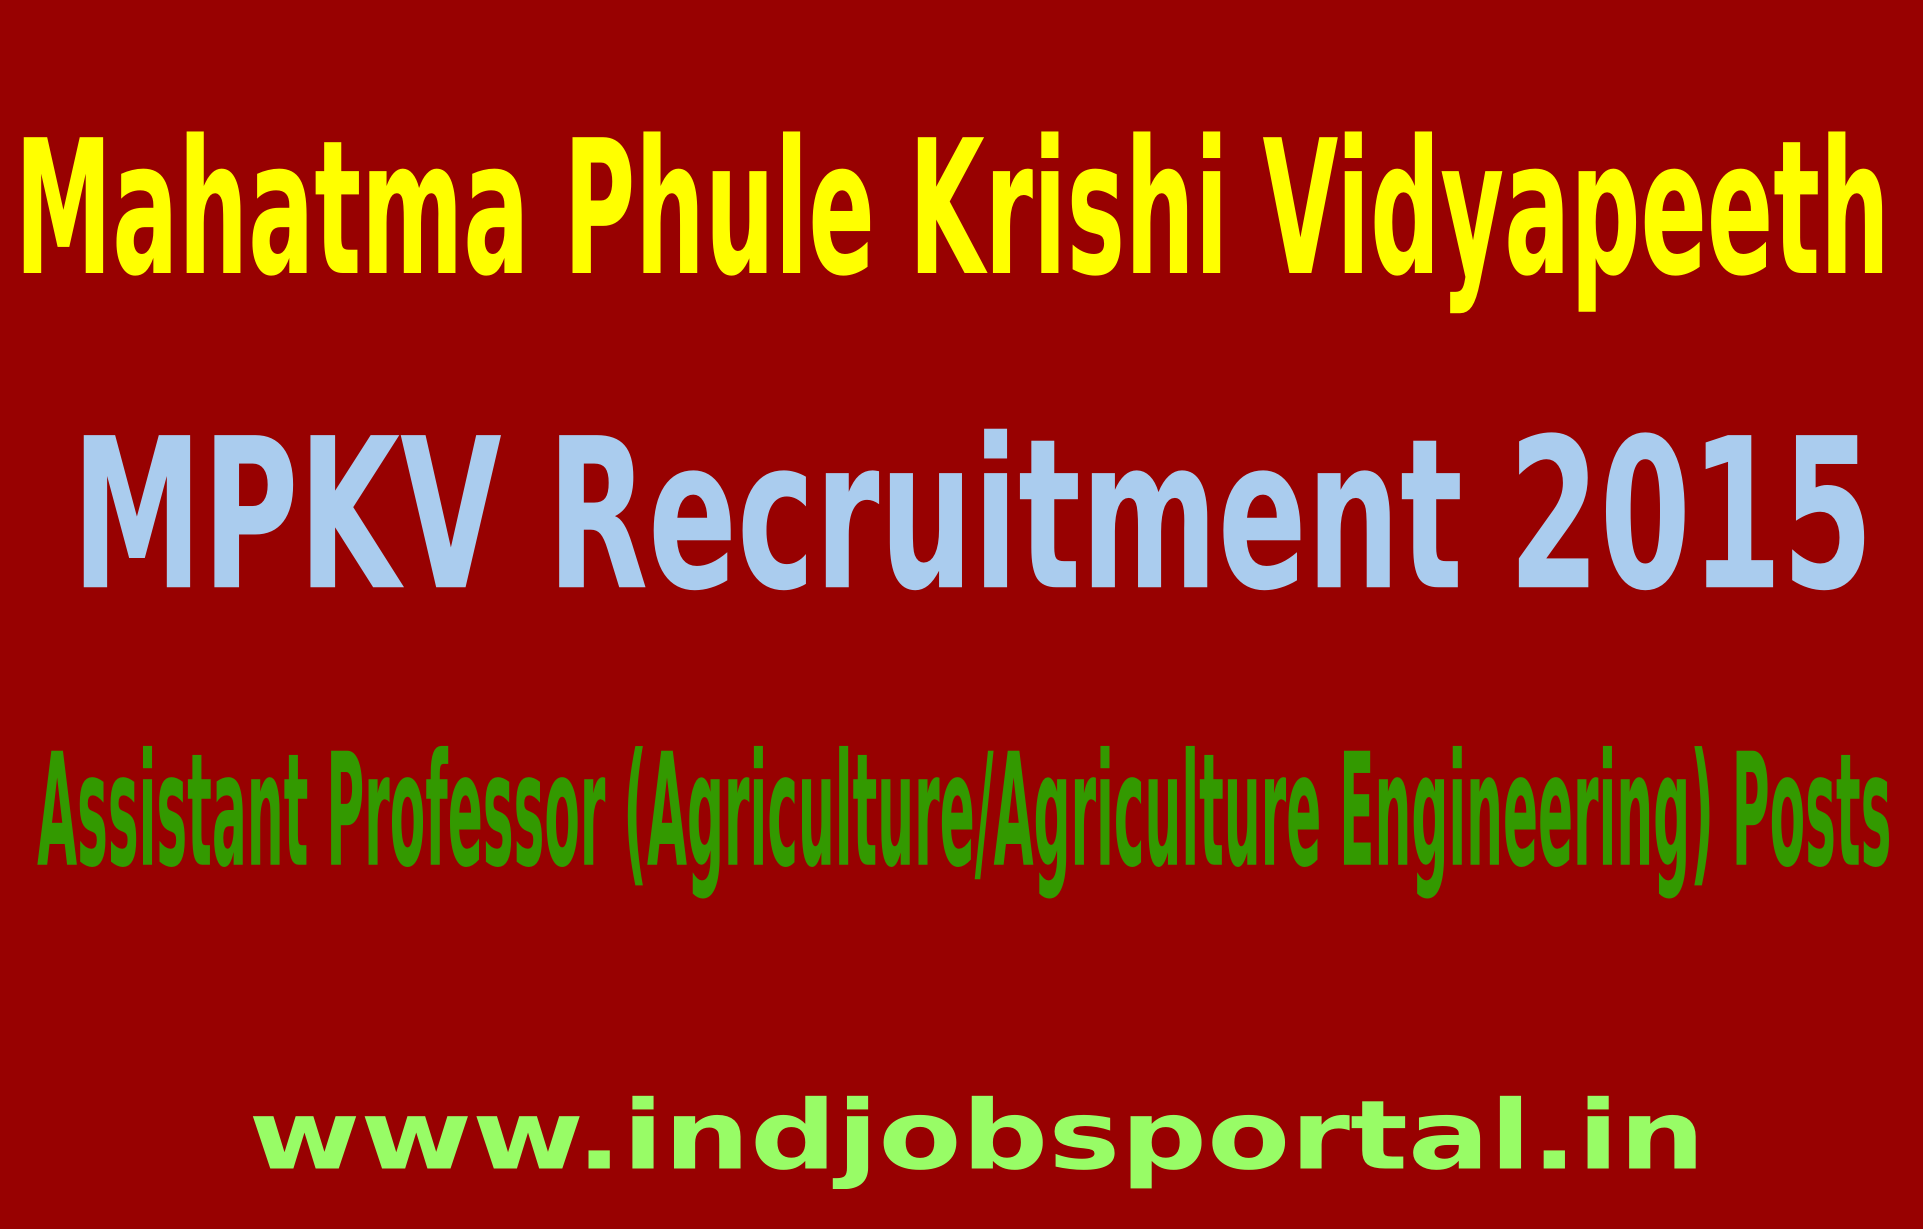 MPKV Recruitment 2015 For 62 Assistant Professor (Agriculture/Agriculture Engineering) Posts